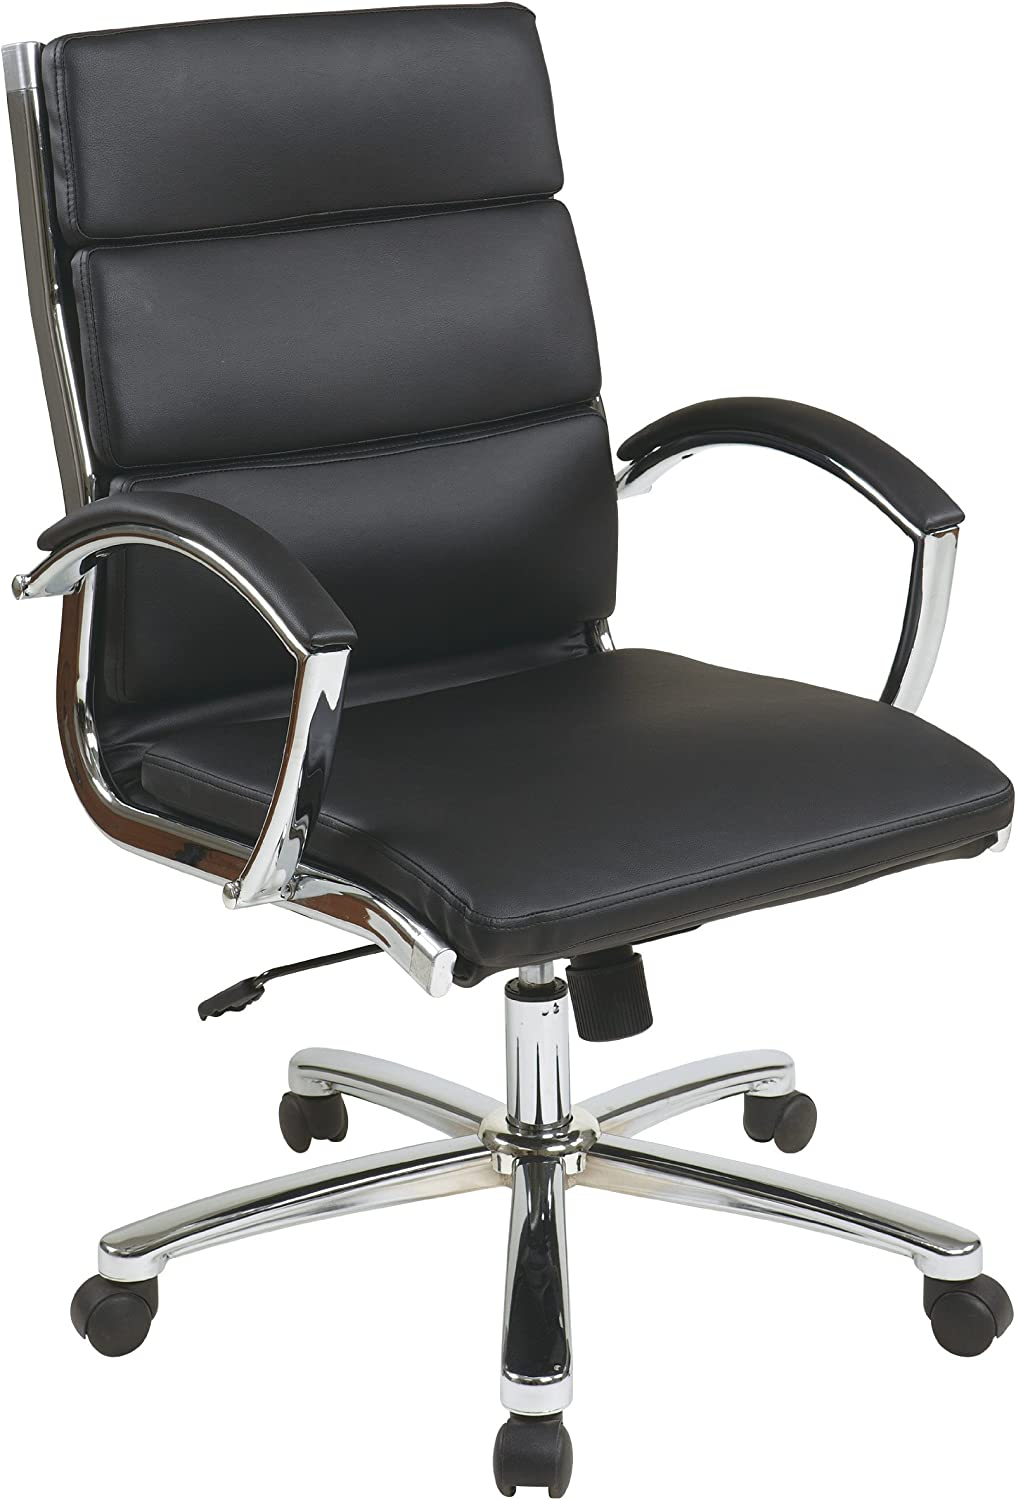 Office Star Mid Back Executive Faux Leather Chair with Chrome Finished Base and Padded Arms, Black